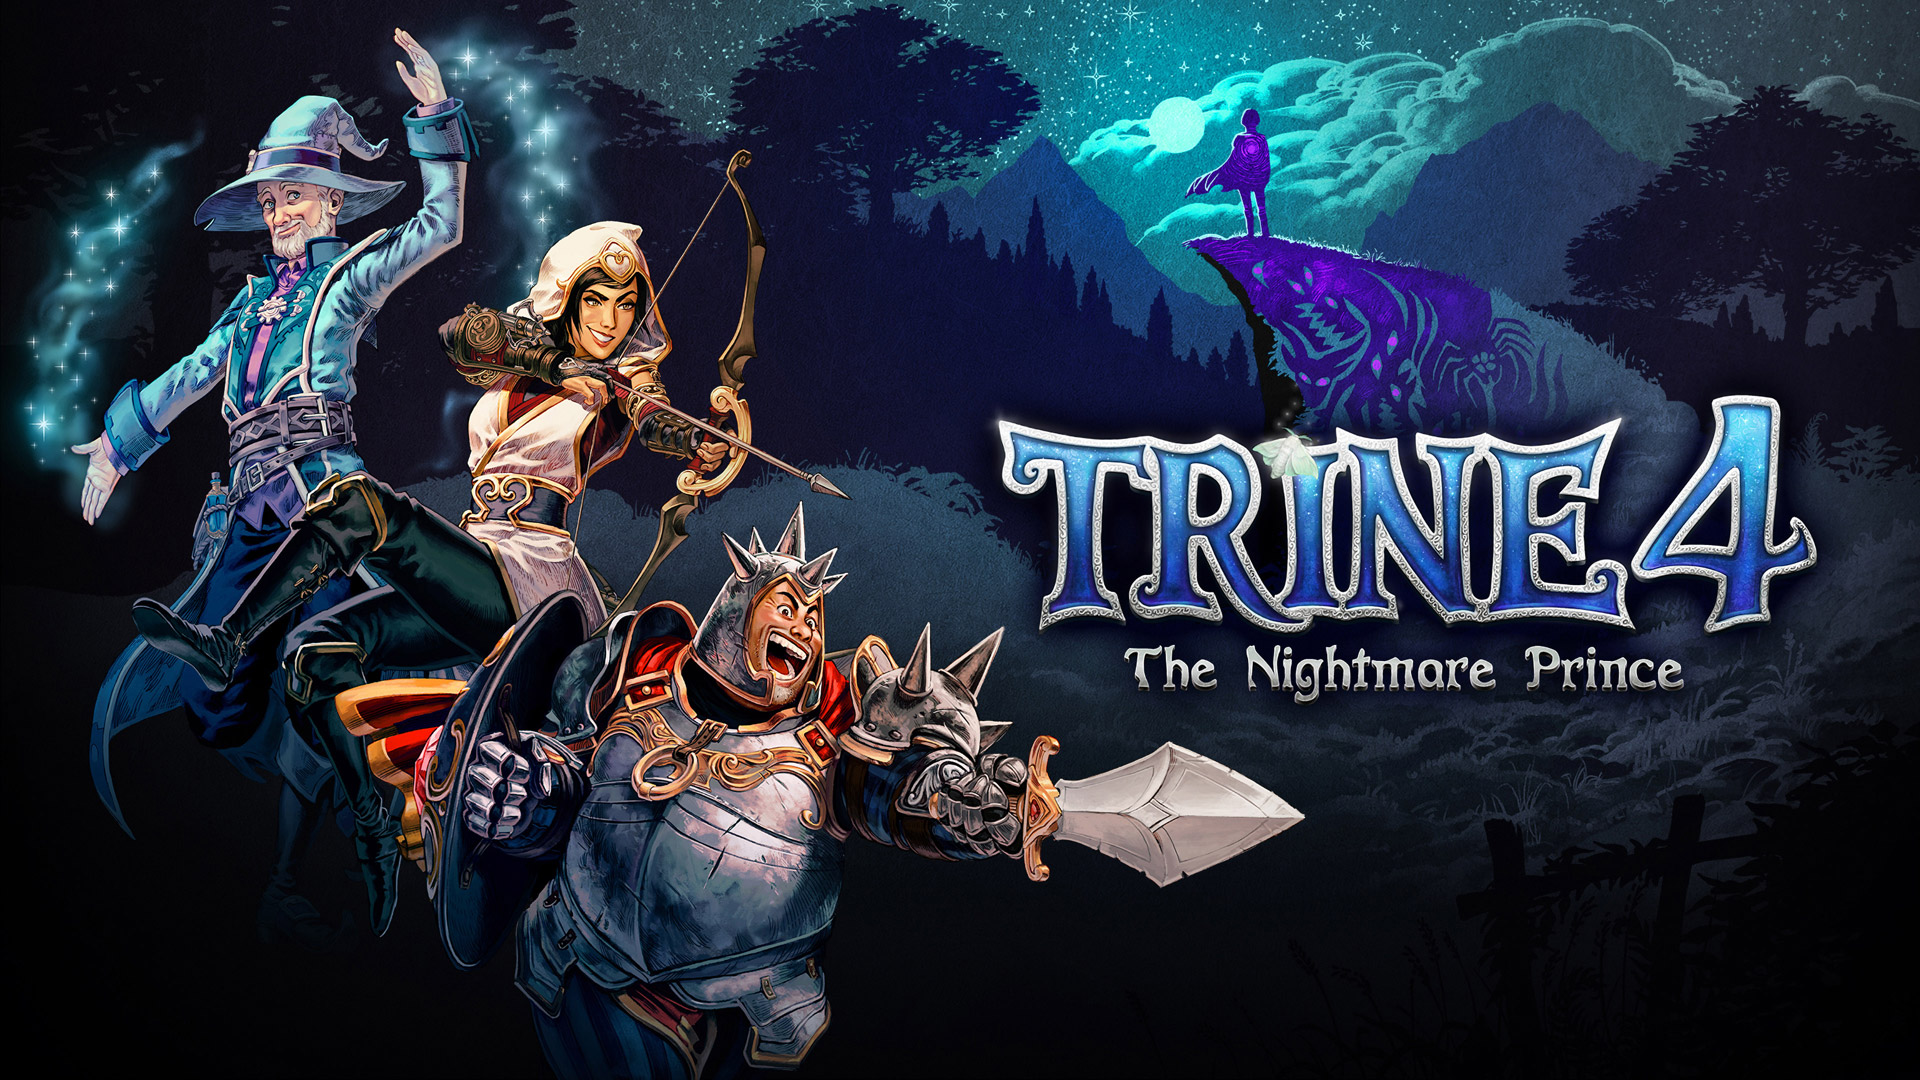 Trine 4: The Nightmare Prince Wallpaper in 1920x1080